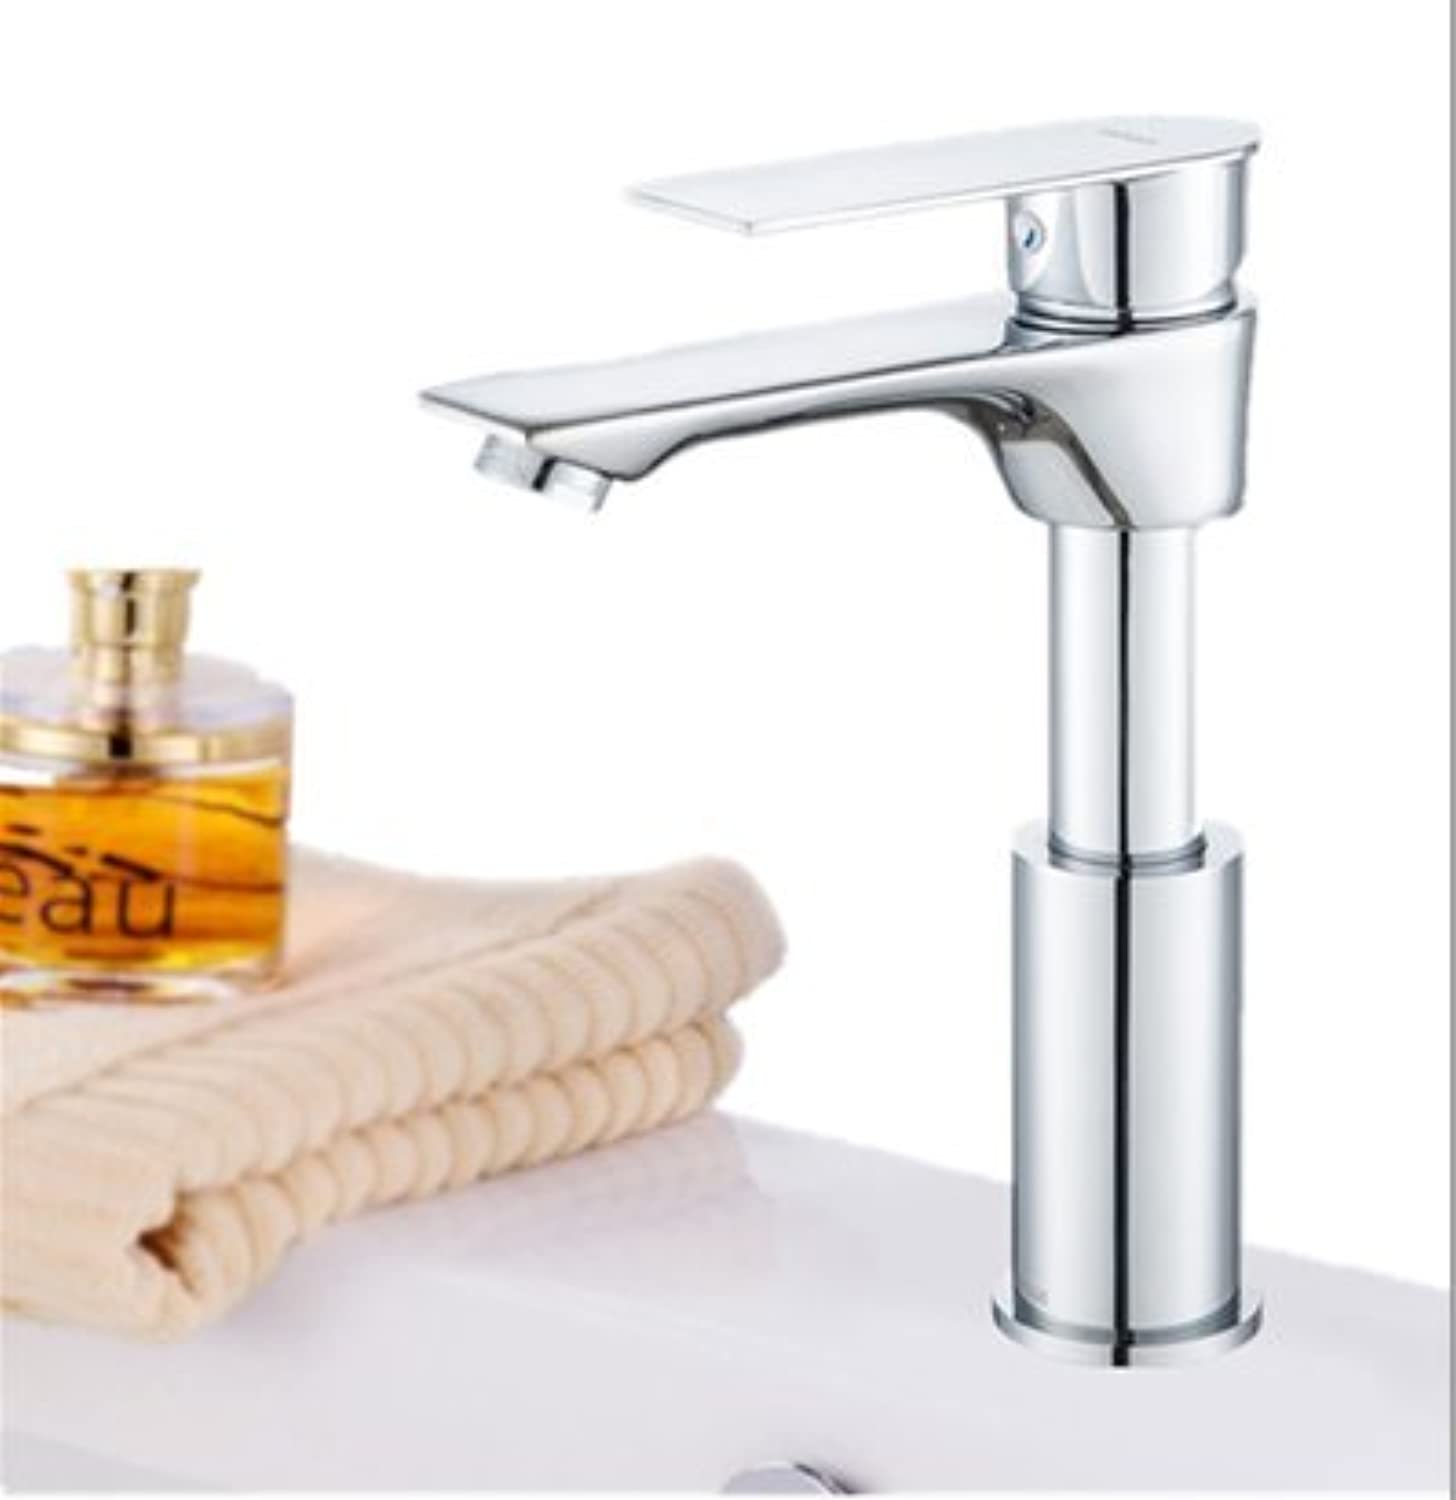 XPYFaucet Faucet Tap Taps Hot and cold basin_Bathroom copper basin lifting and redating, lifting and redating single hole